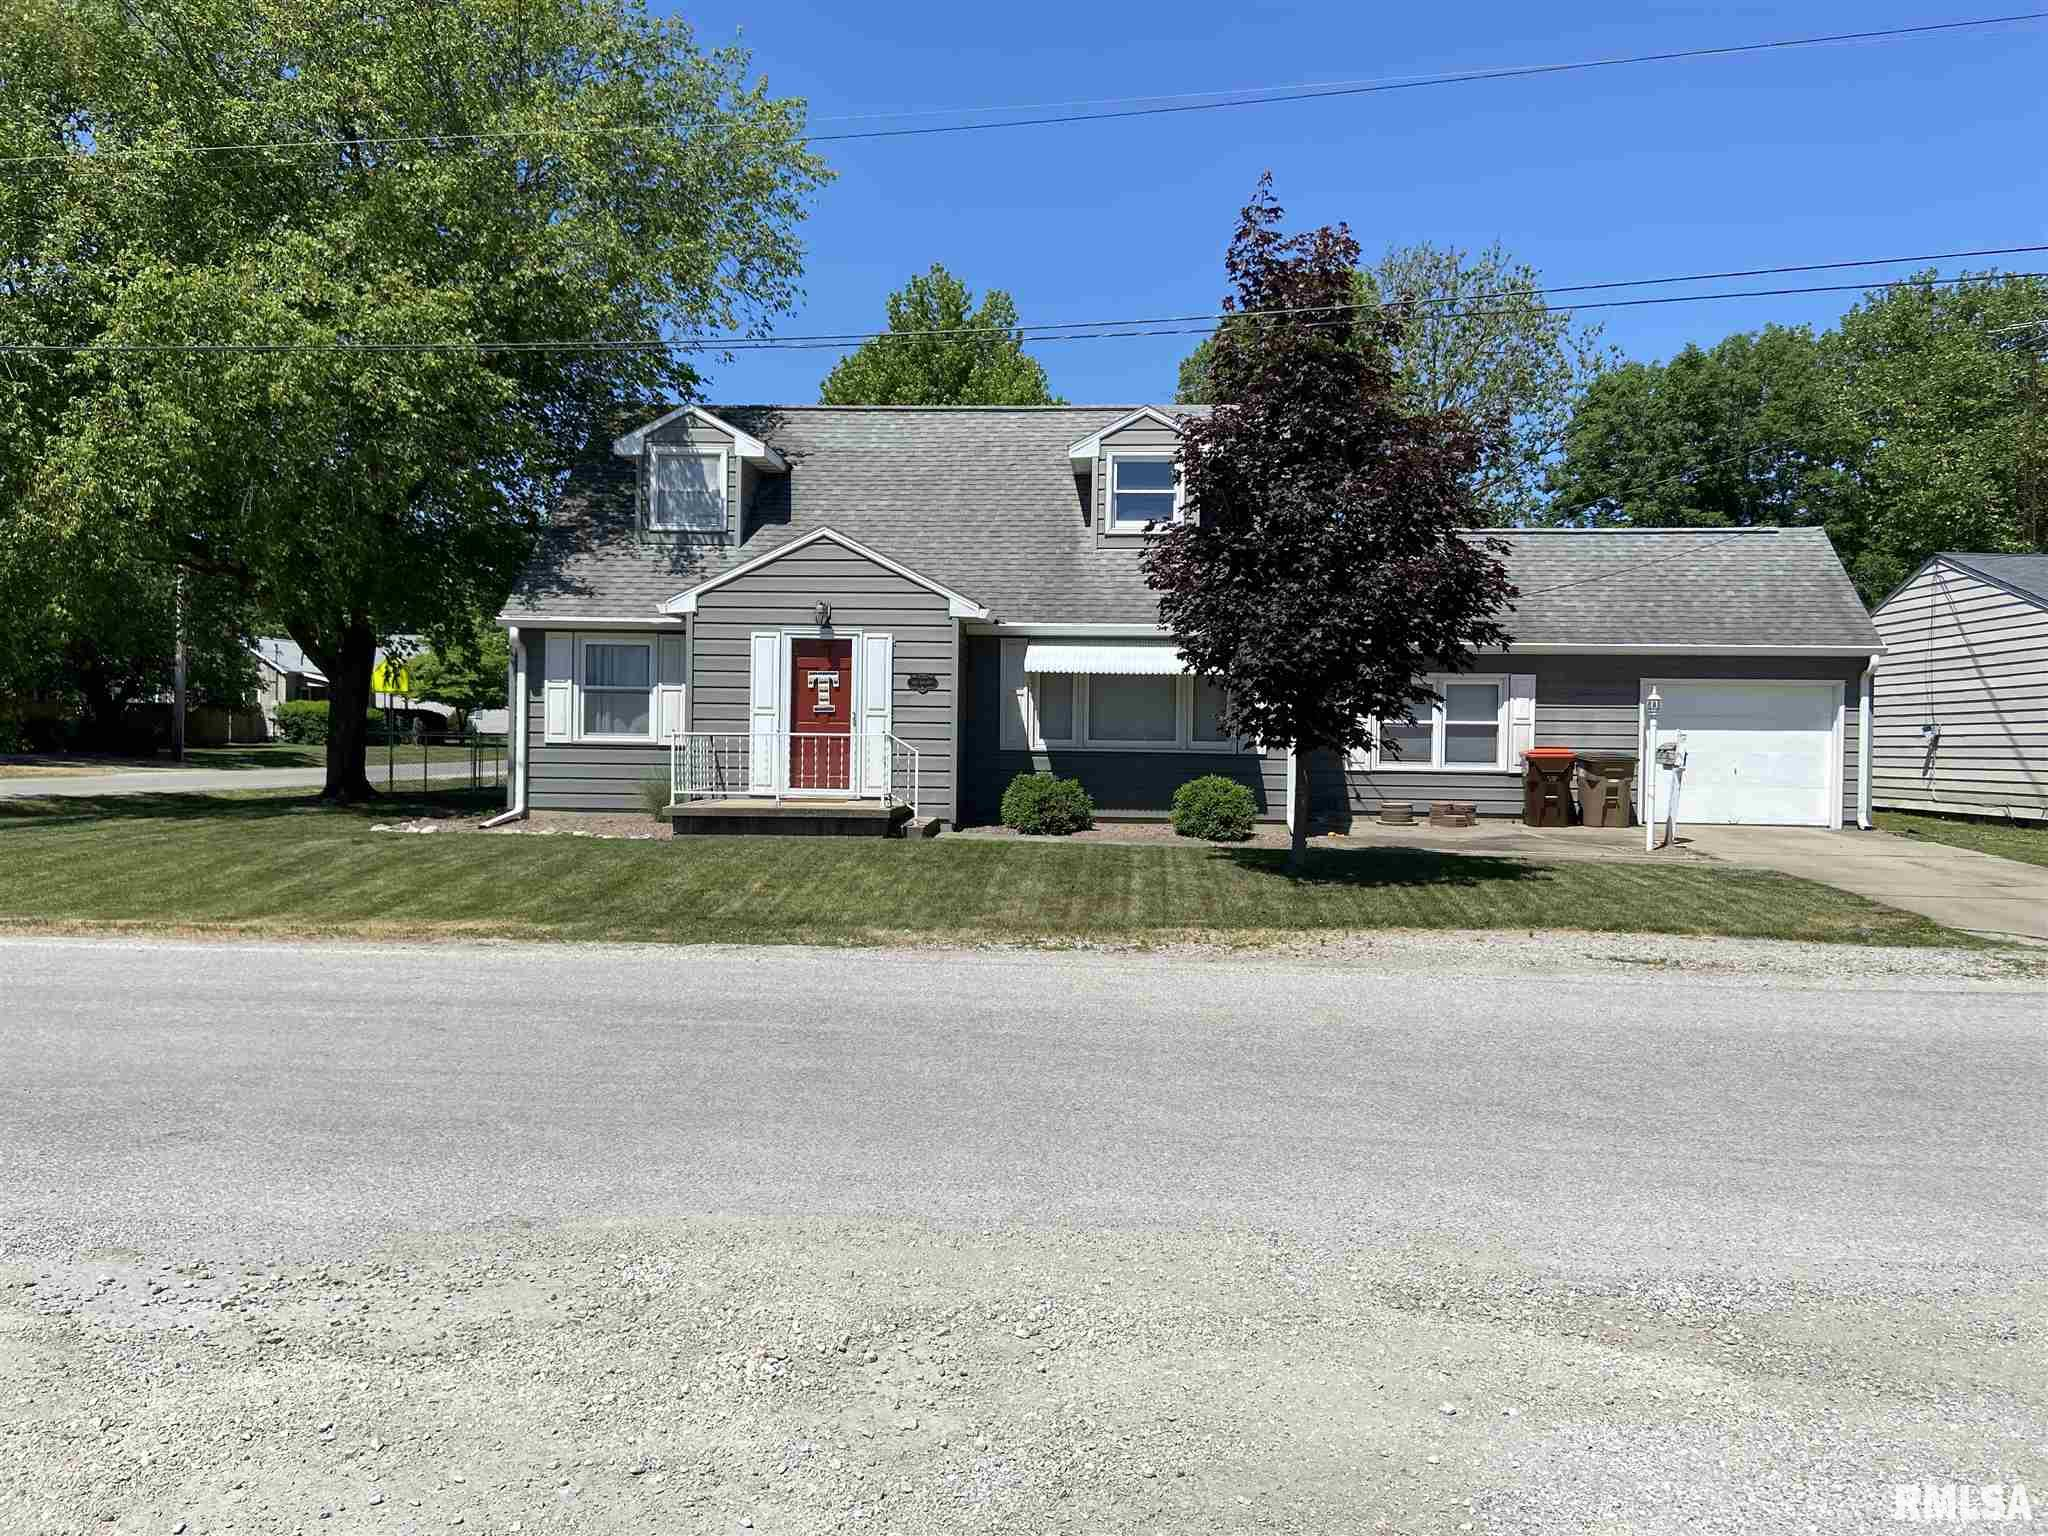 402 S WALNUT Property Photo - Auburn, IL real estate listing